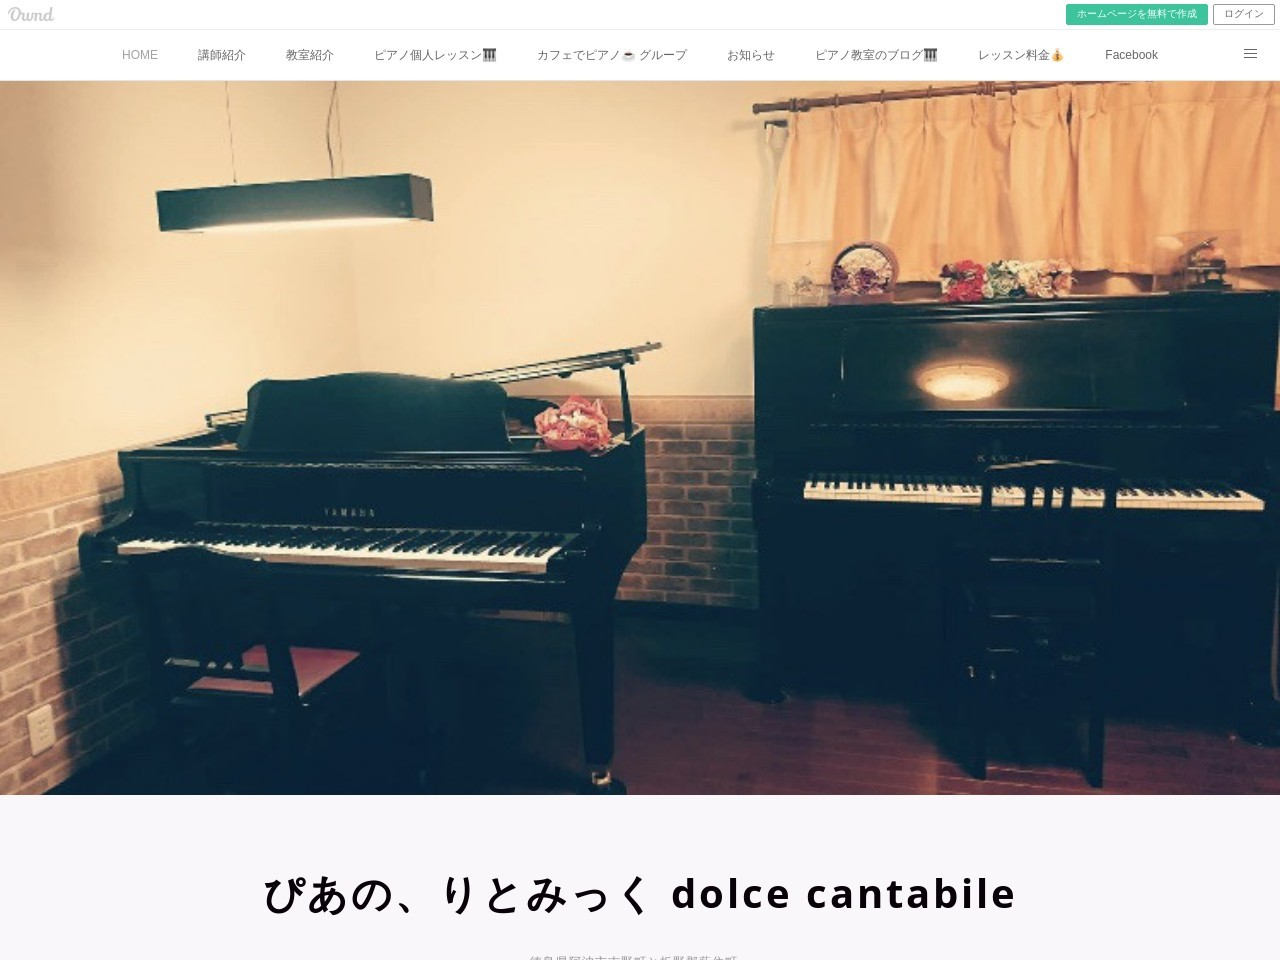 dolce cantabileのサムネイル